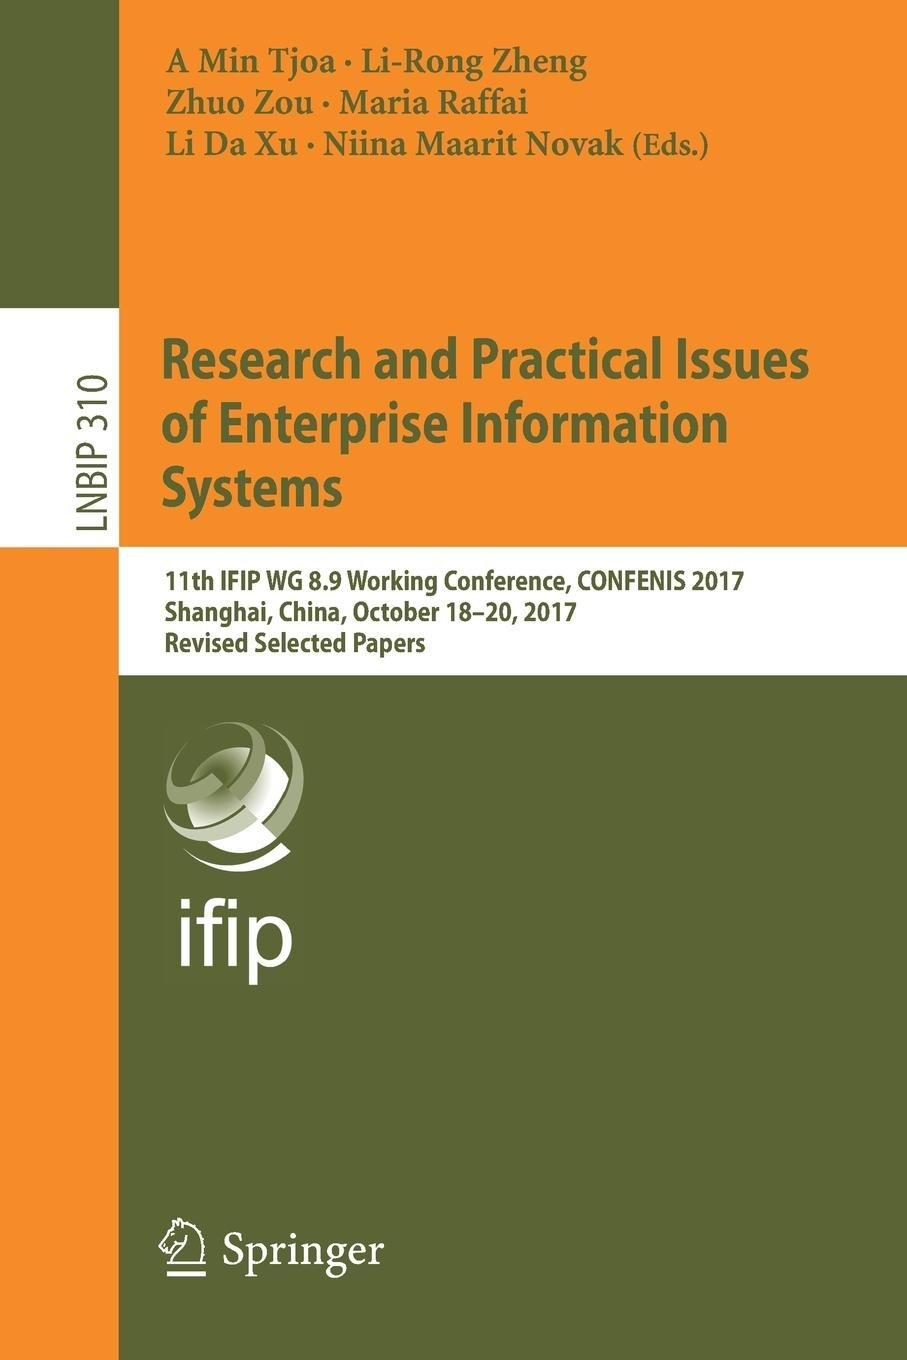 Download Research and Practical Issues of Enterprise Information Systems: 11th IFIP WG 8.9 Working Conference, CONFENIS 2017, Shanghai, China, October 18-20, ... Notes in Business Information Processing) pdf epub